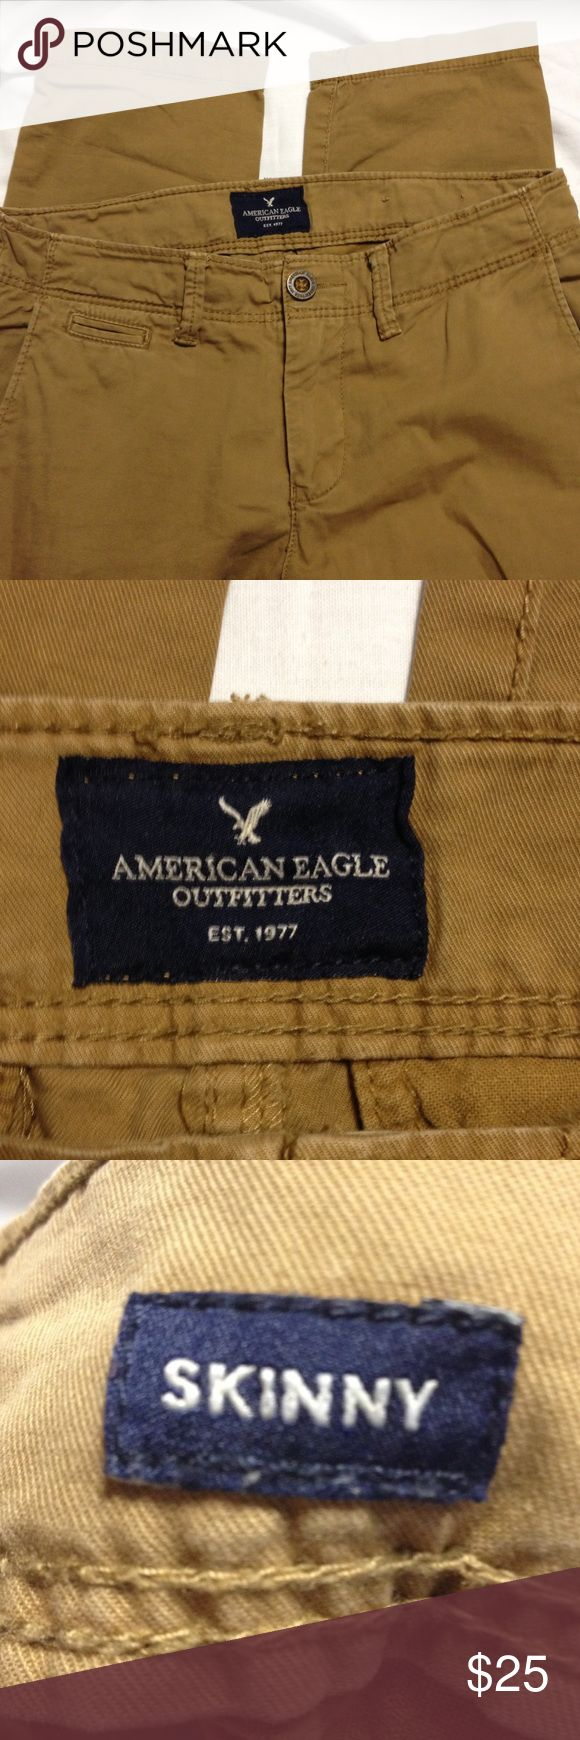 Men's American Eagle skinny khaki pants 29x30 These AE khaki pants are perfect if you must wear khaki pants to work.  They are in excellent preloved condition.  Skinny . 29x30 American Eagle Outfitters Pants Chinos & Khakis